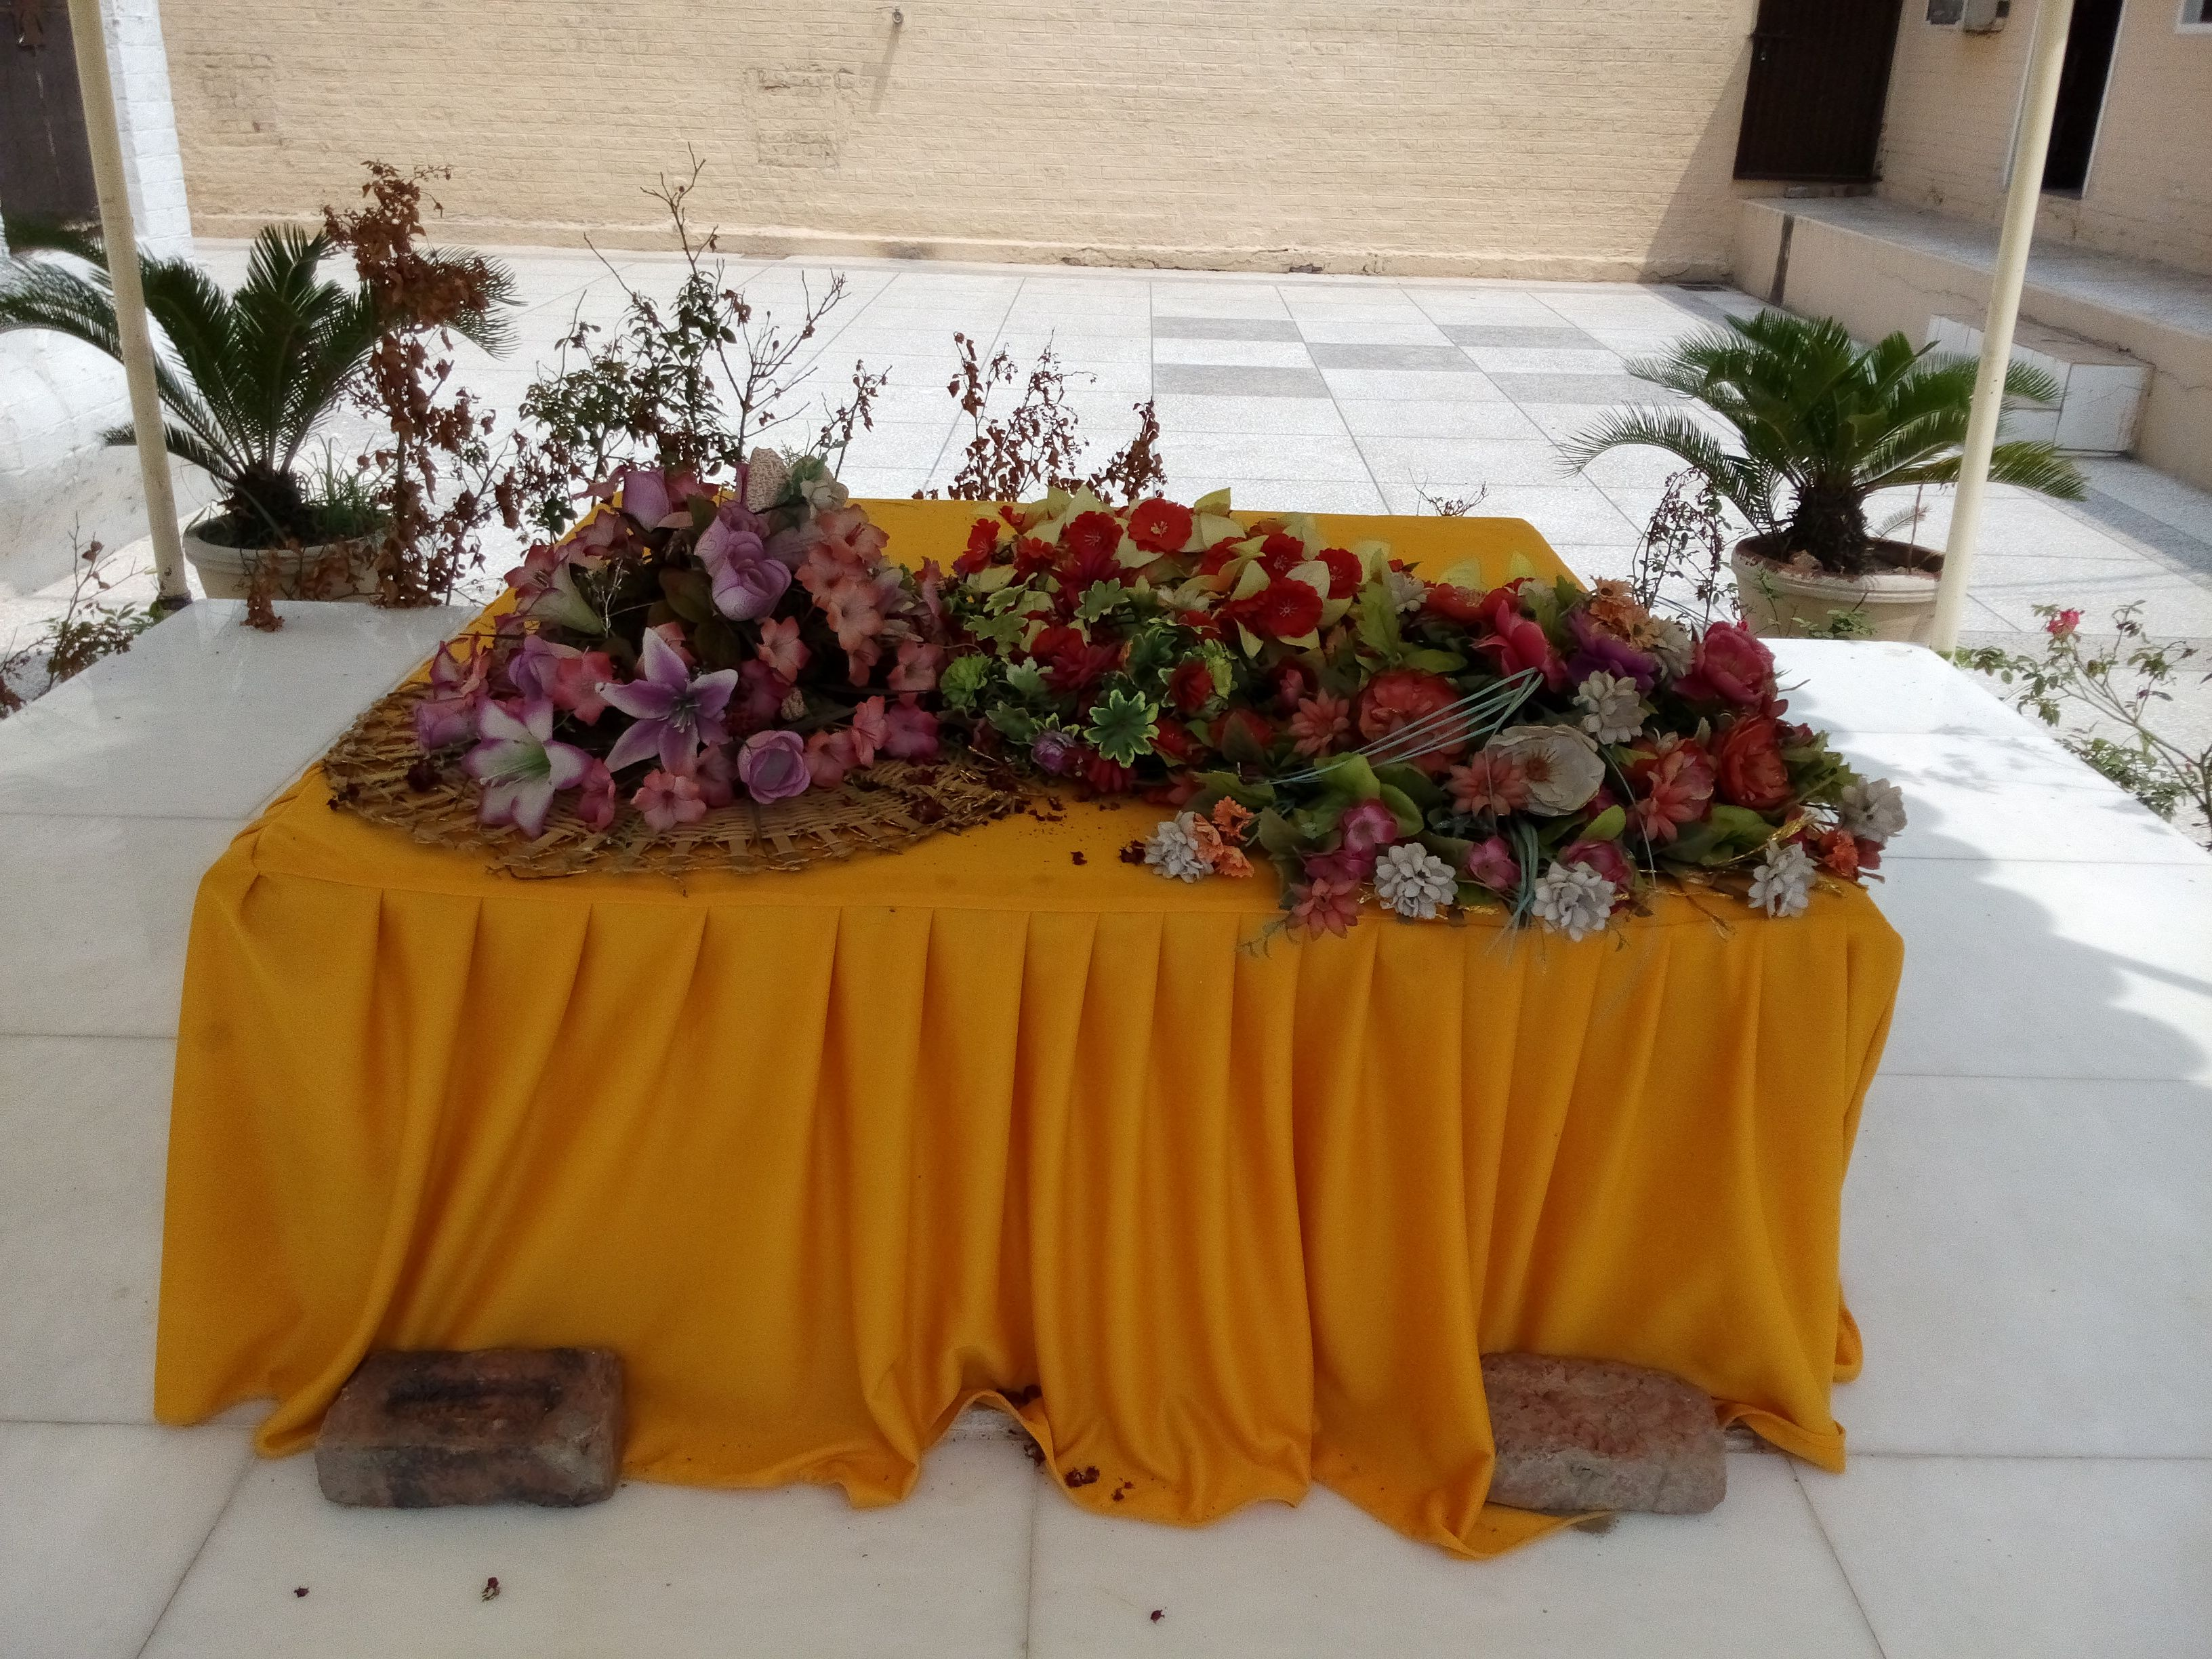 The burial site where reportedly the half piece of the shawl covering the later disappeared body of Guru Nanak Dev Ji was buried by the Muslims in line with final rites as per their faith.